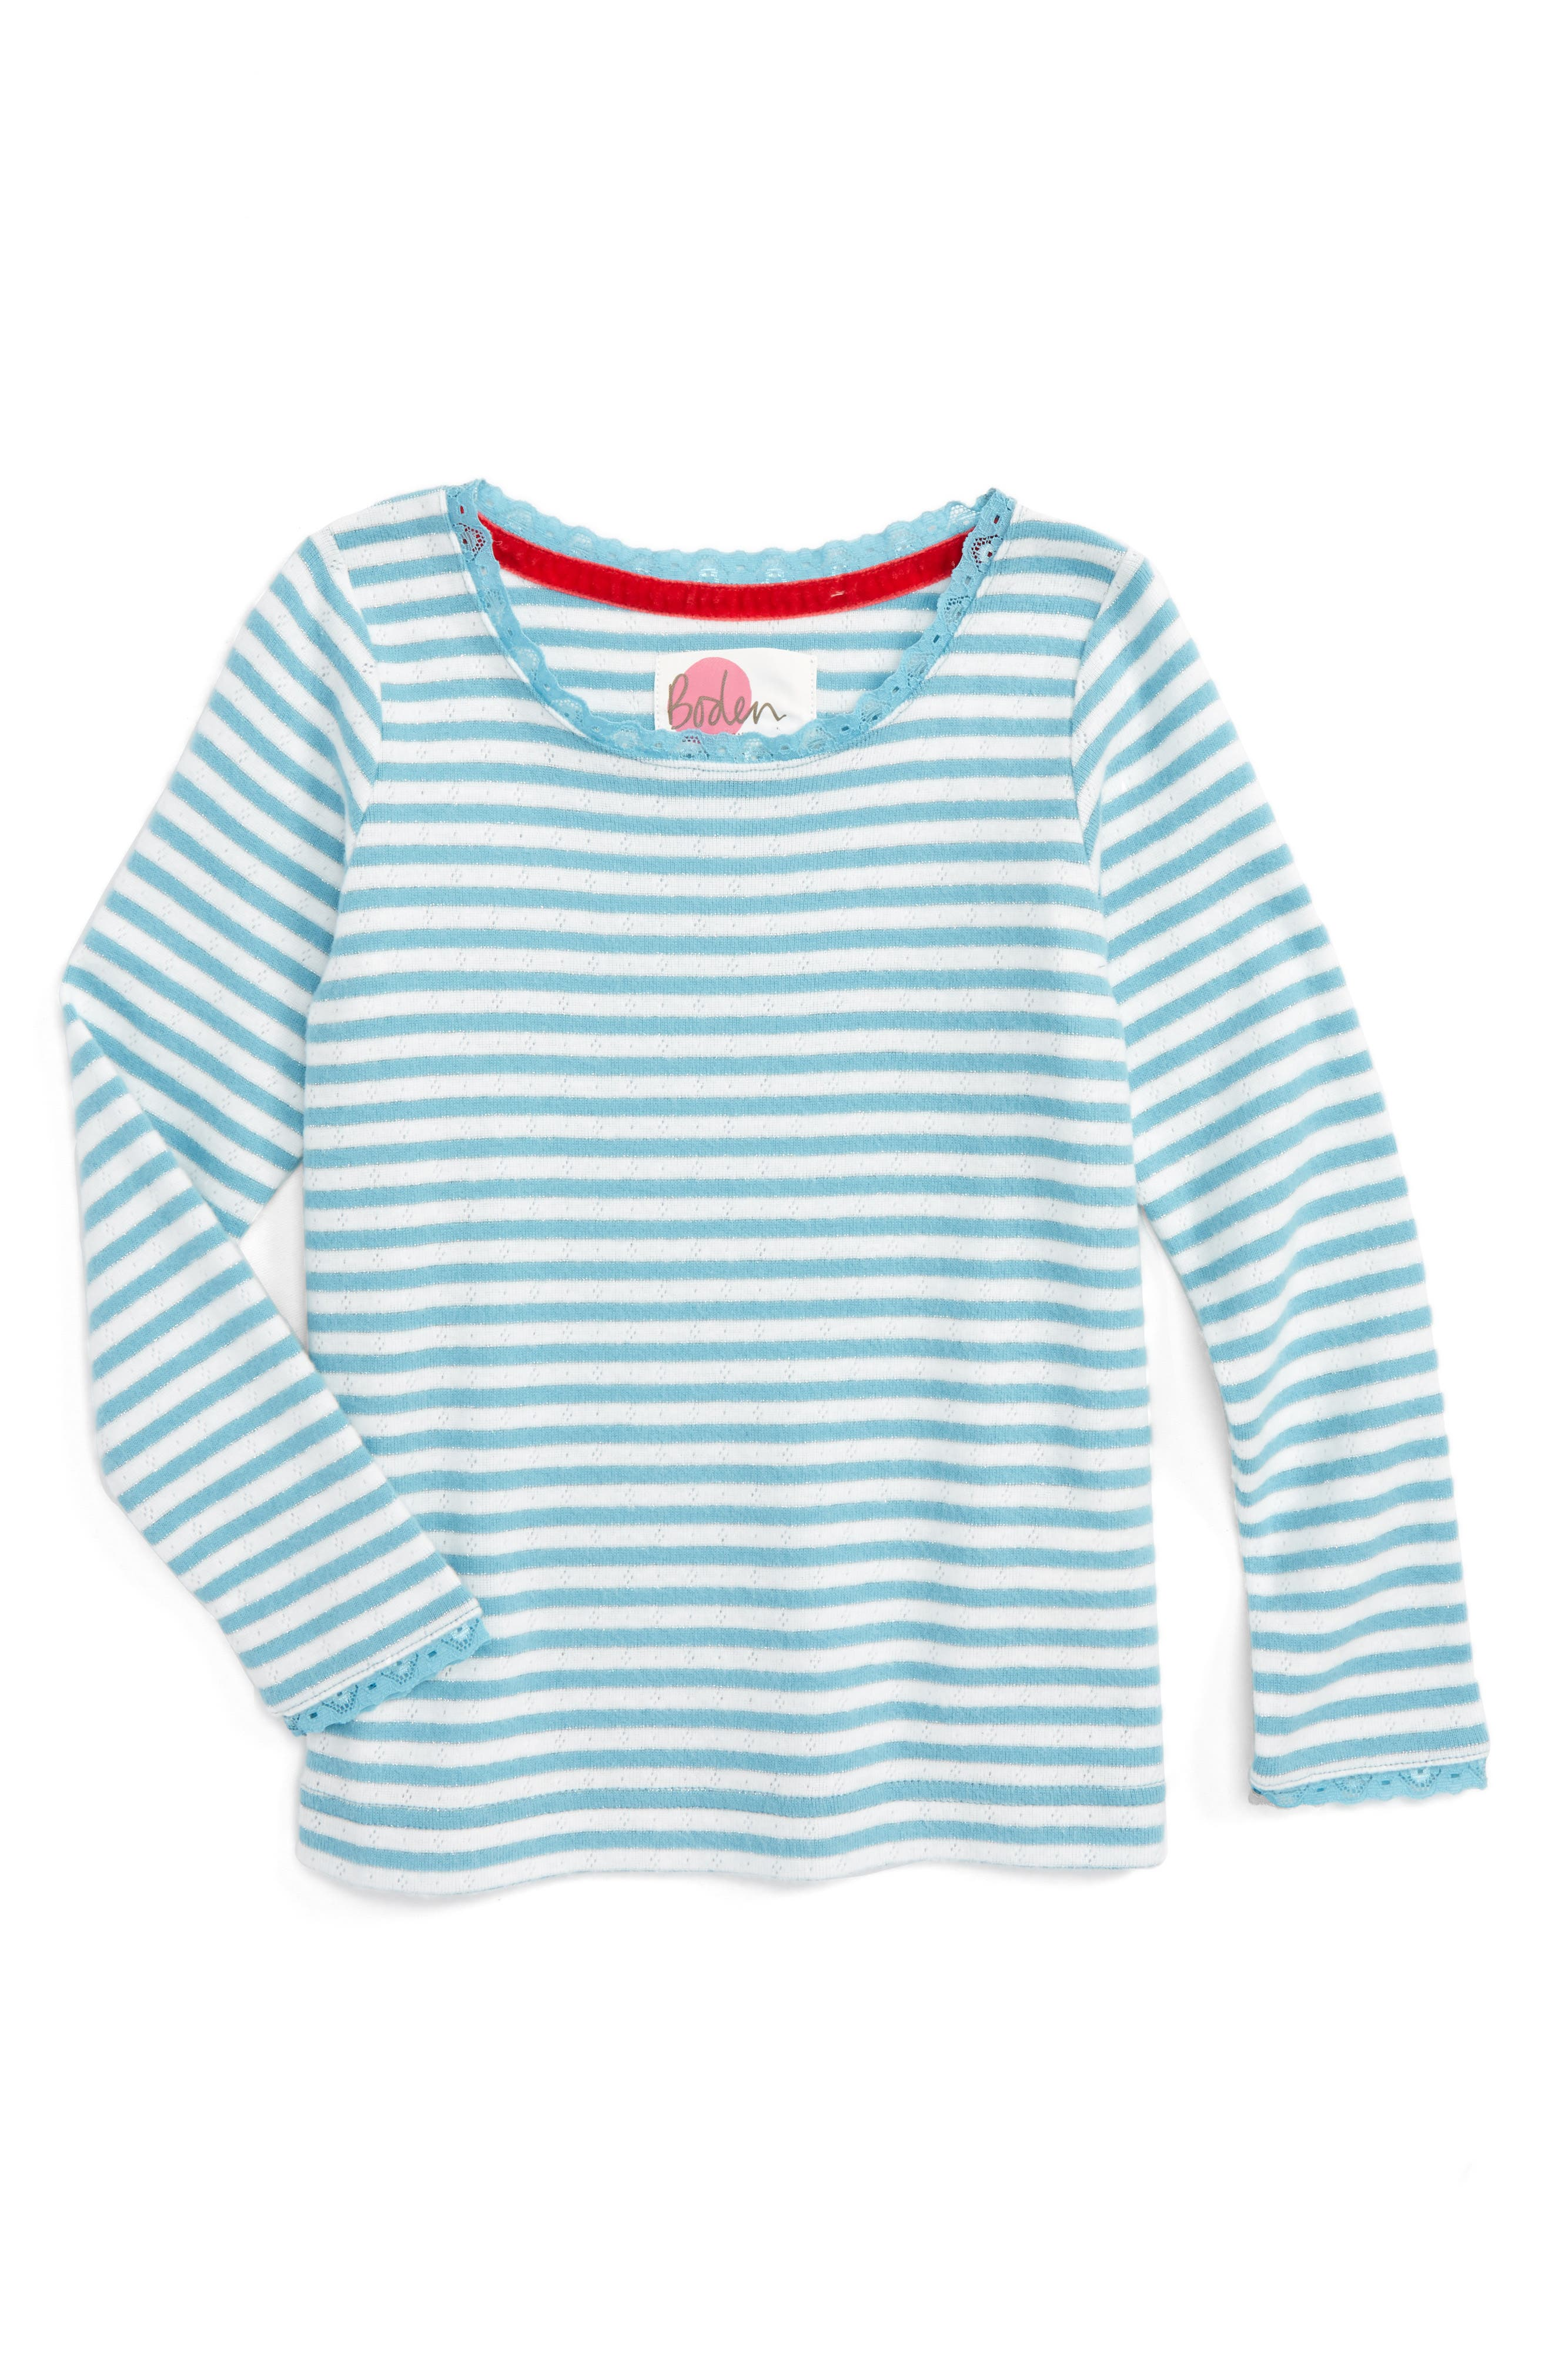 Mini Boden Sparkly Pointelle Tee (Toddler Girls, Little Girls & Big Girls)